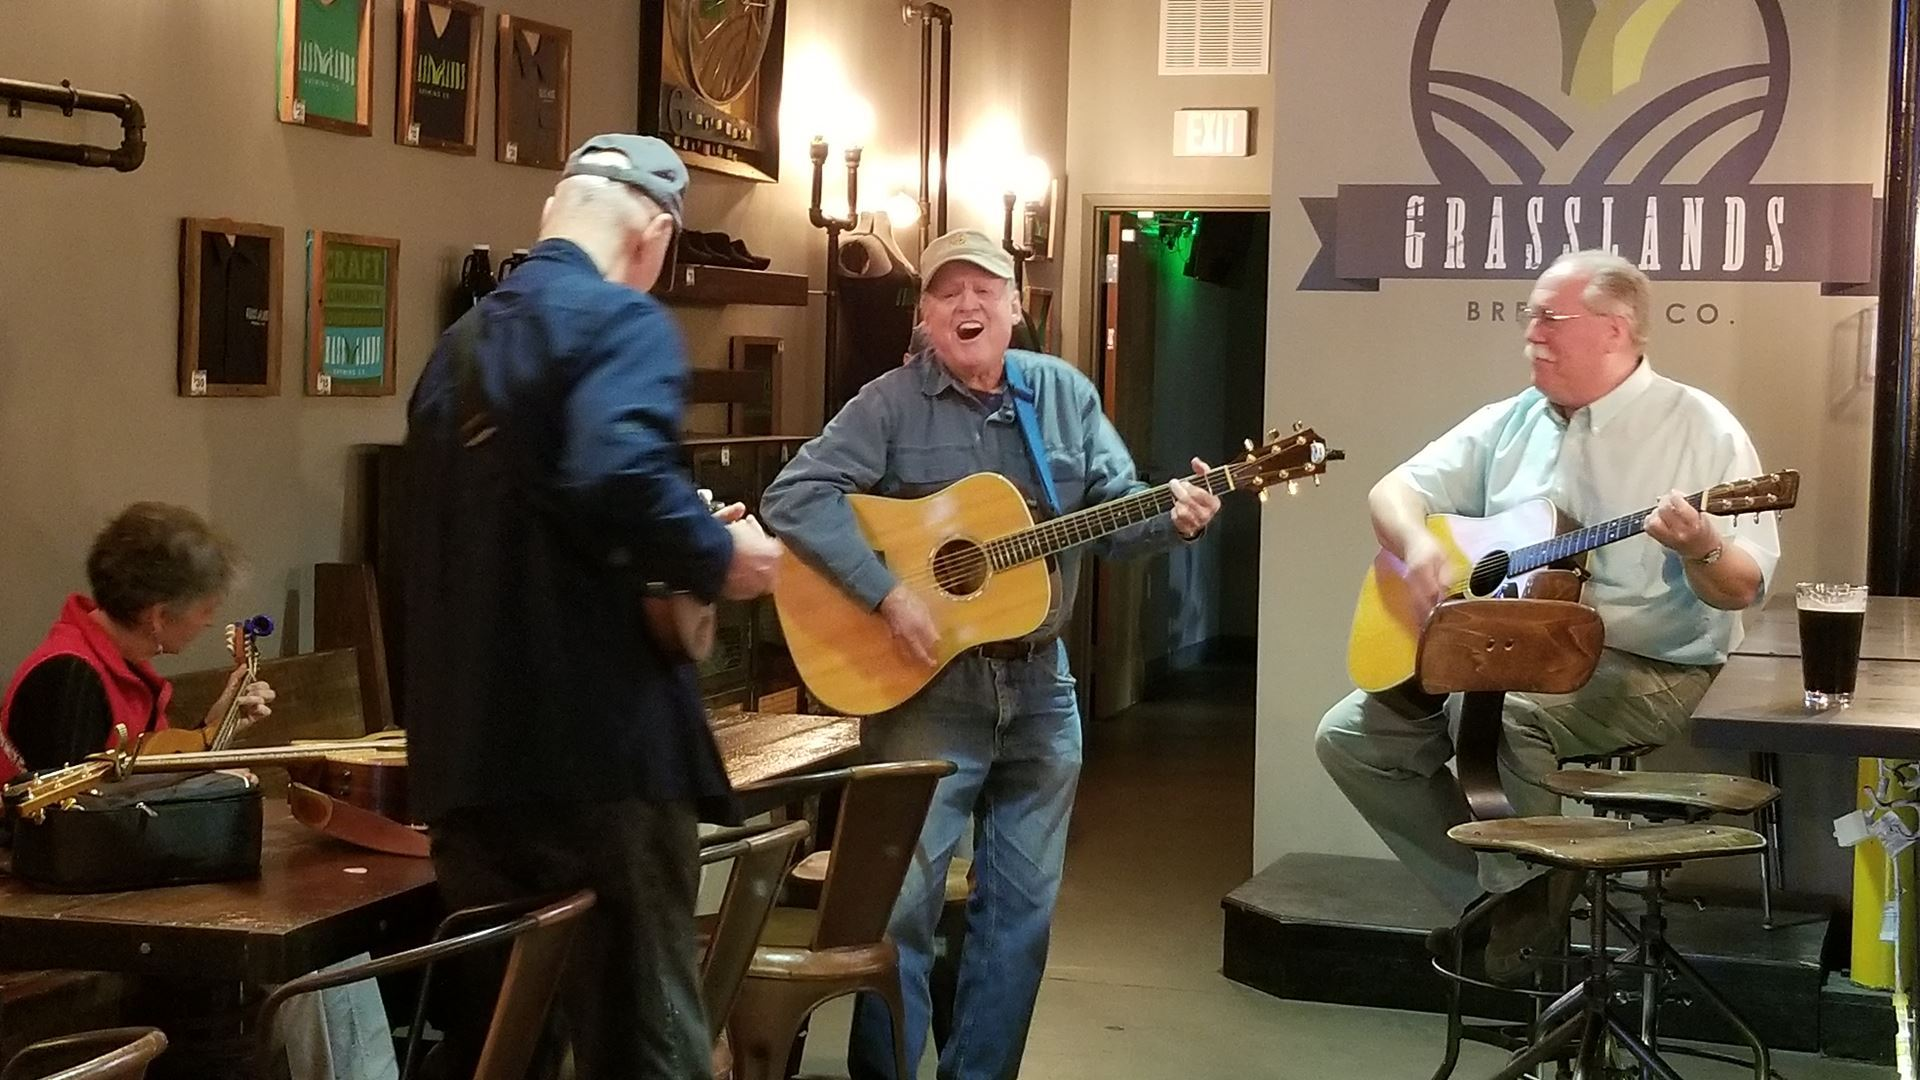 2018 at GrassLand Brewery, Tim Lynch and Stew Parsons